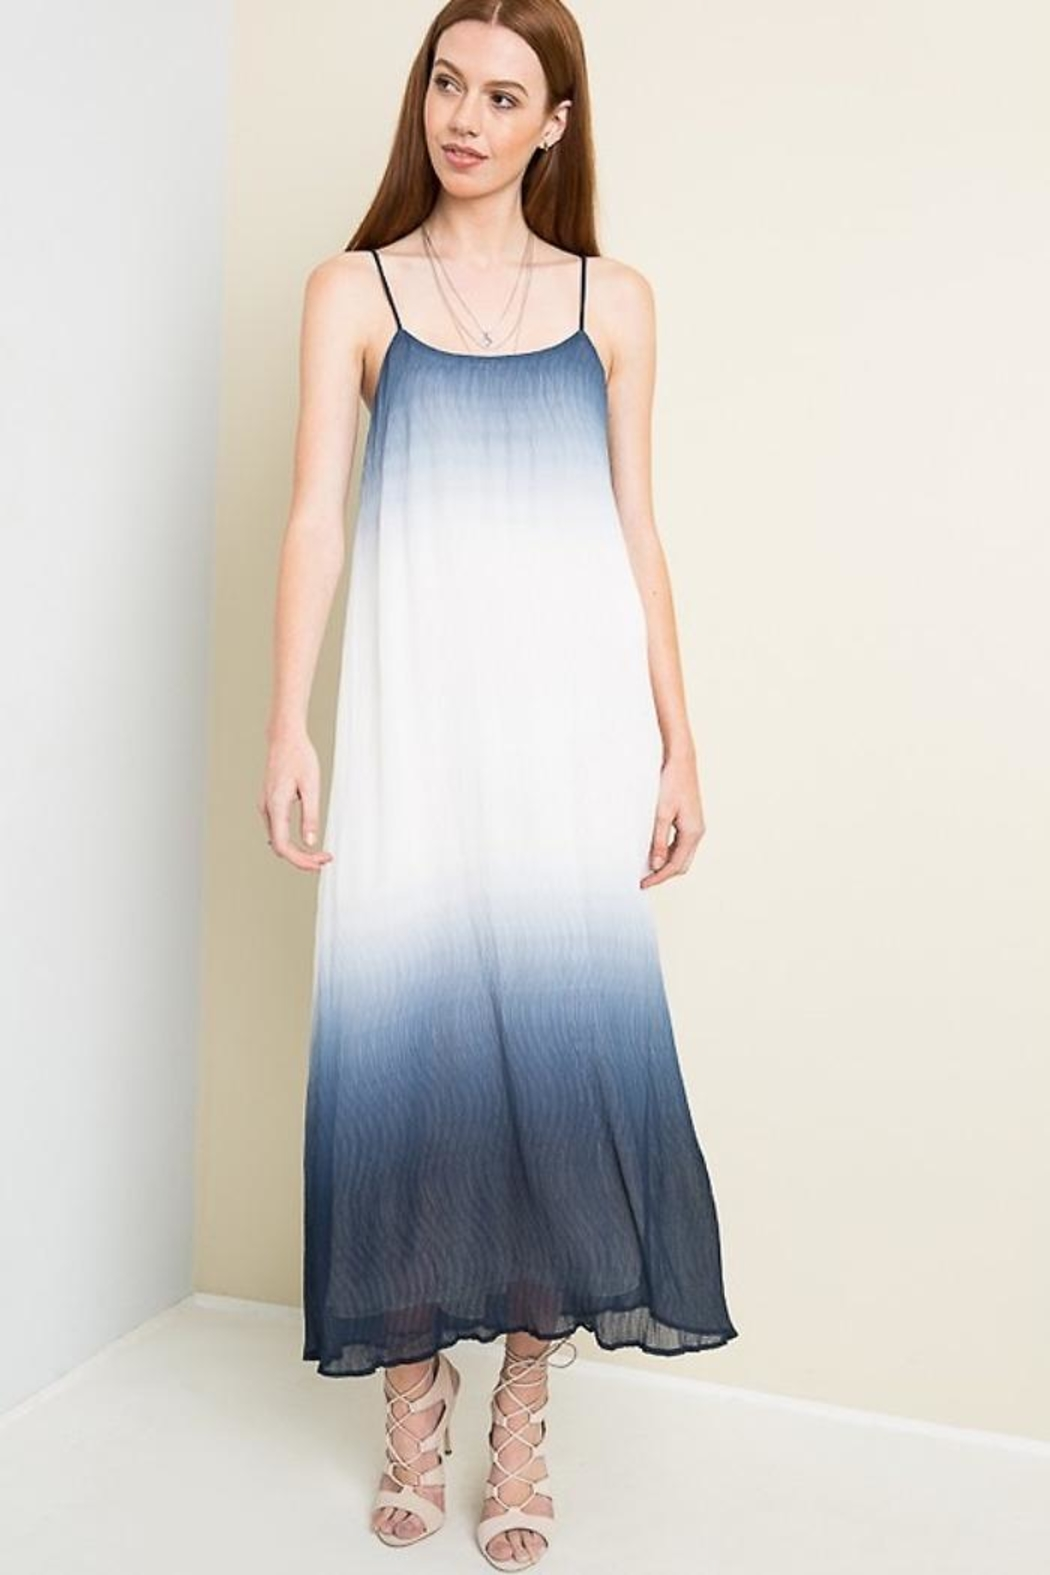 People Outfitter Dip Die Maxi-Dress - Main Image